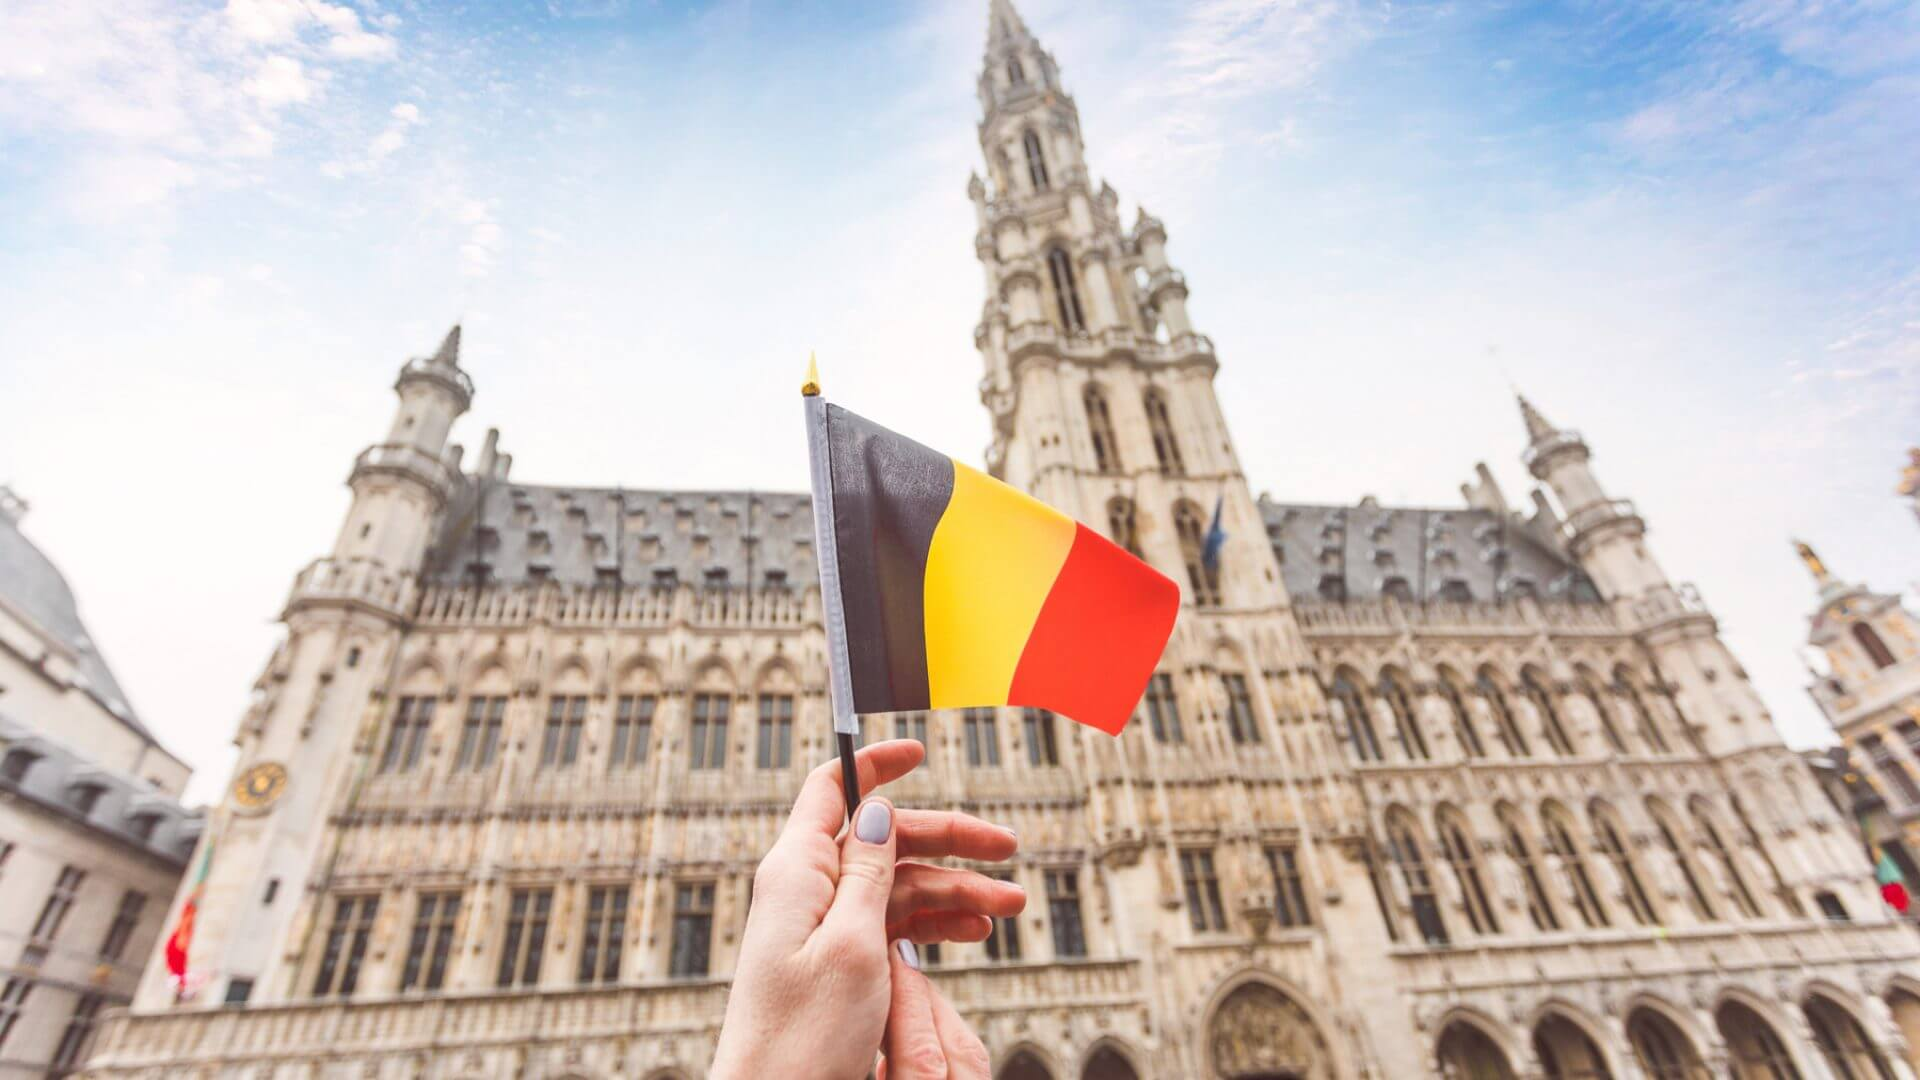 No Government: a Year of Belgium Politics without Politicians. How Do Belgians Live?